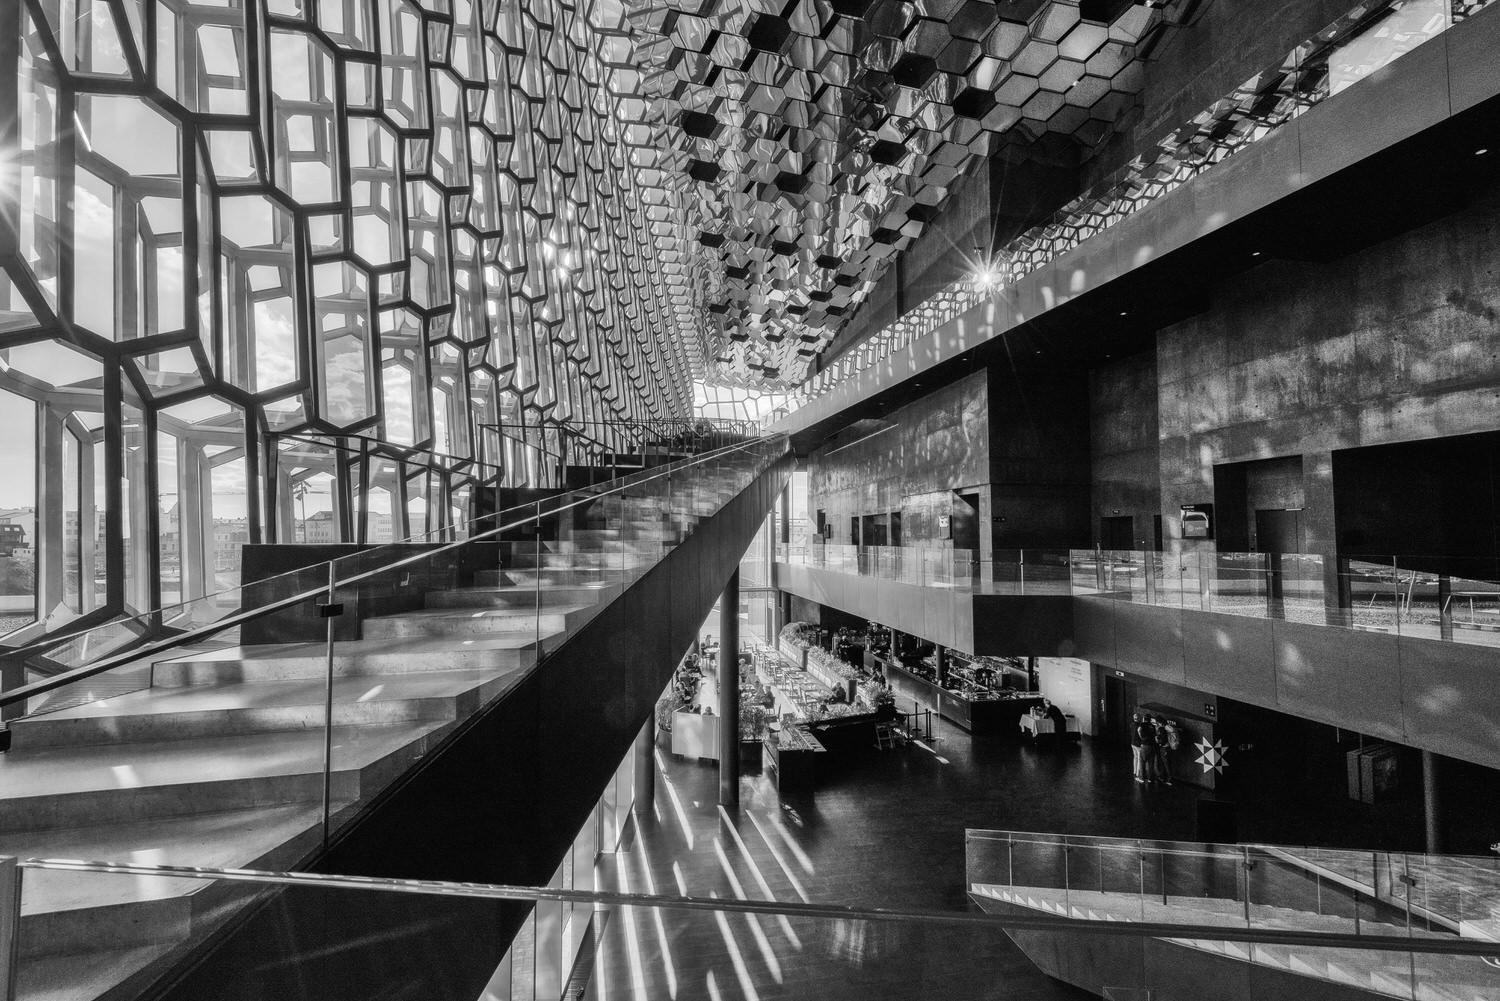 Light and shade together with light and shape provide an expansive view of the spectacular  Harpa Performing Arts Centre  in  Reykjavik, Iceland .